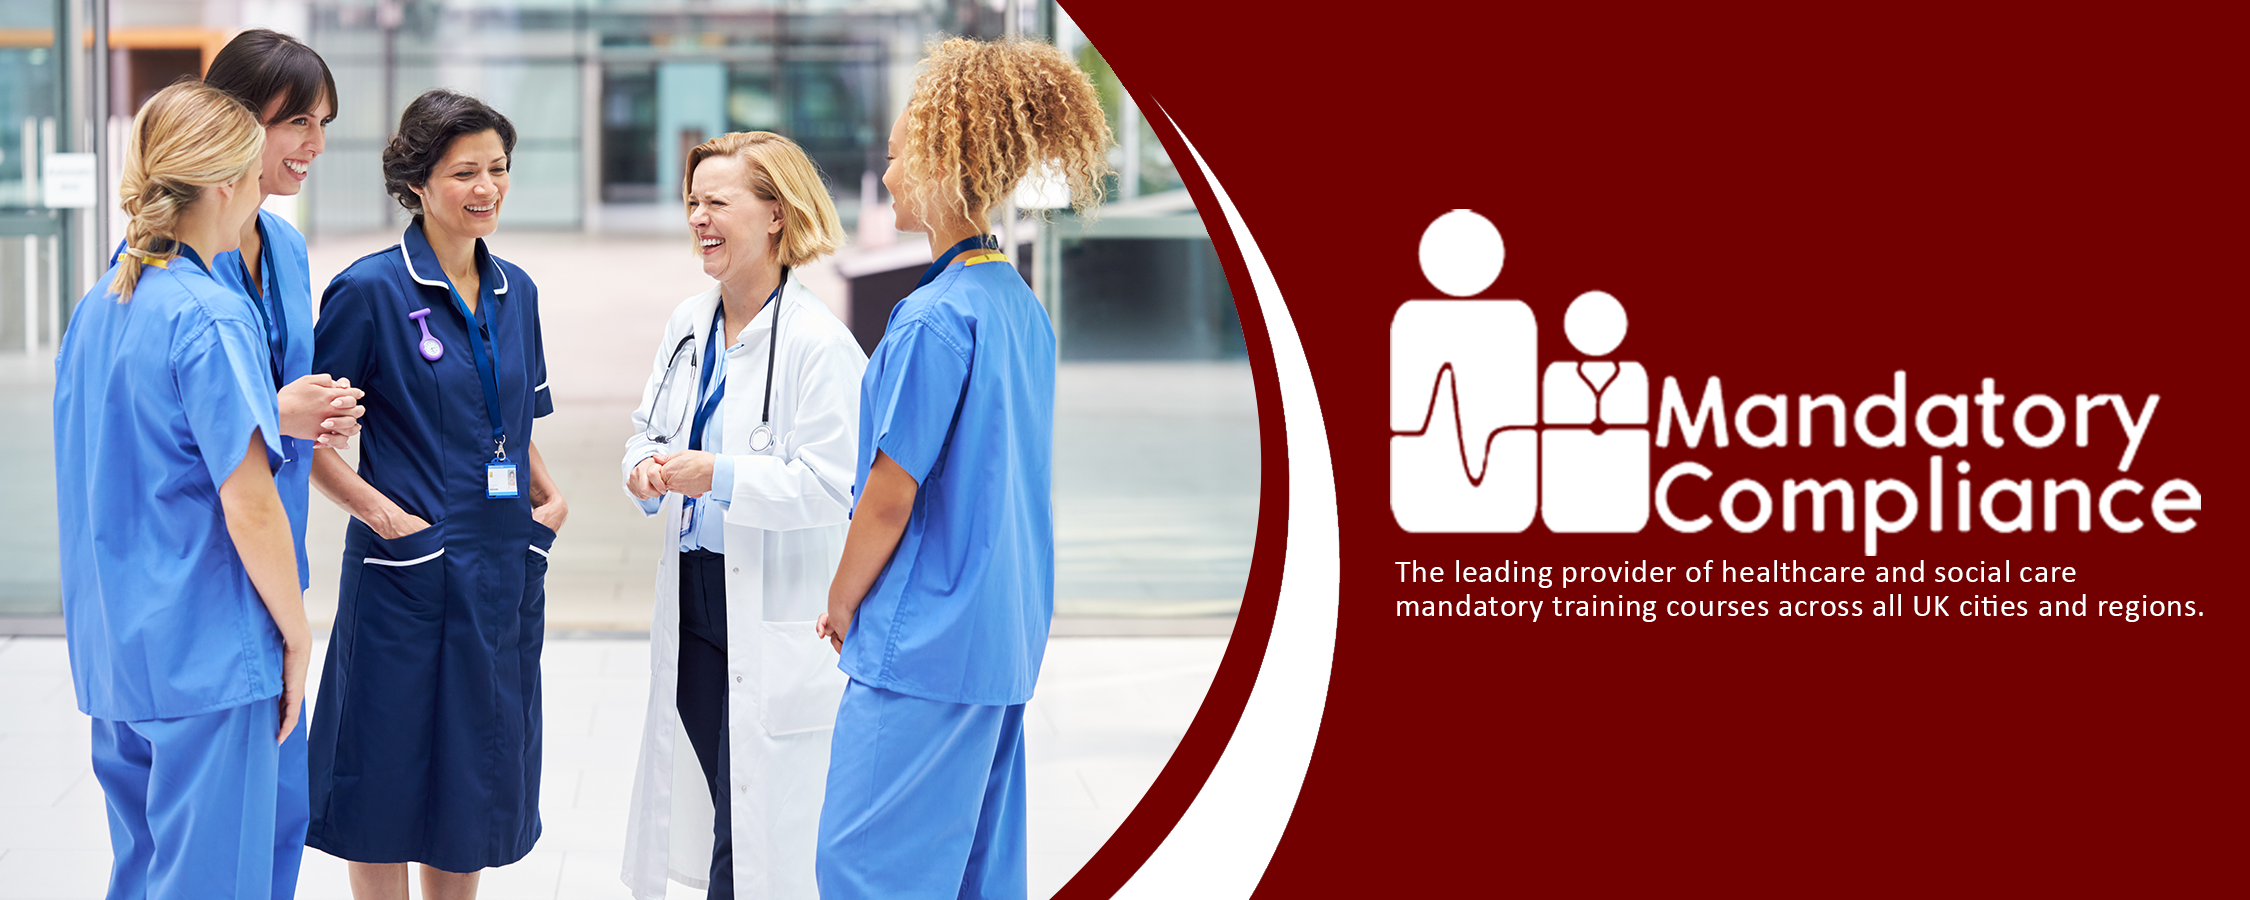 Lone Worker in Health and Care - E-Learning Courses - Mandatory Compliance UK -